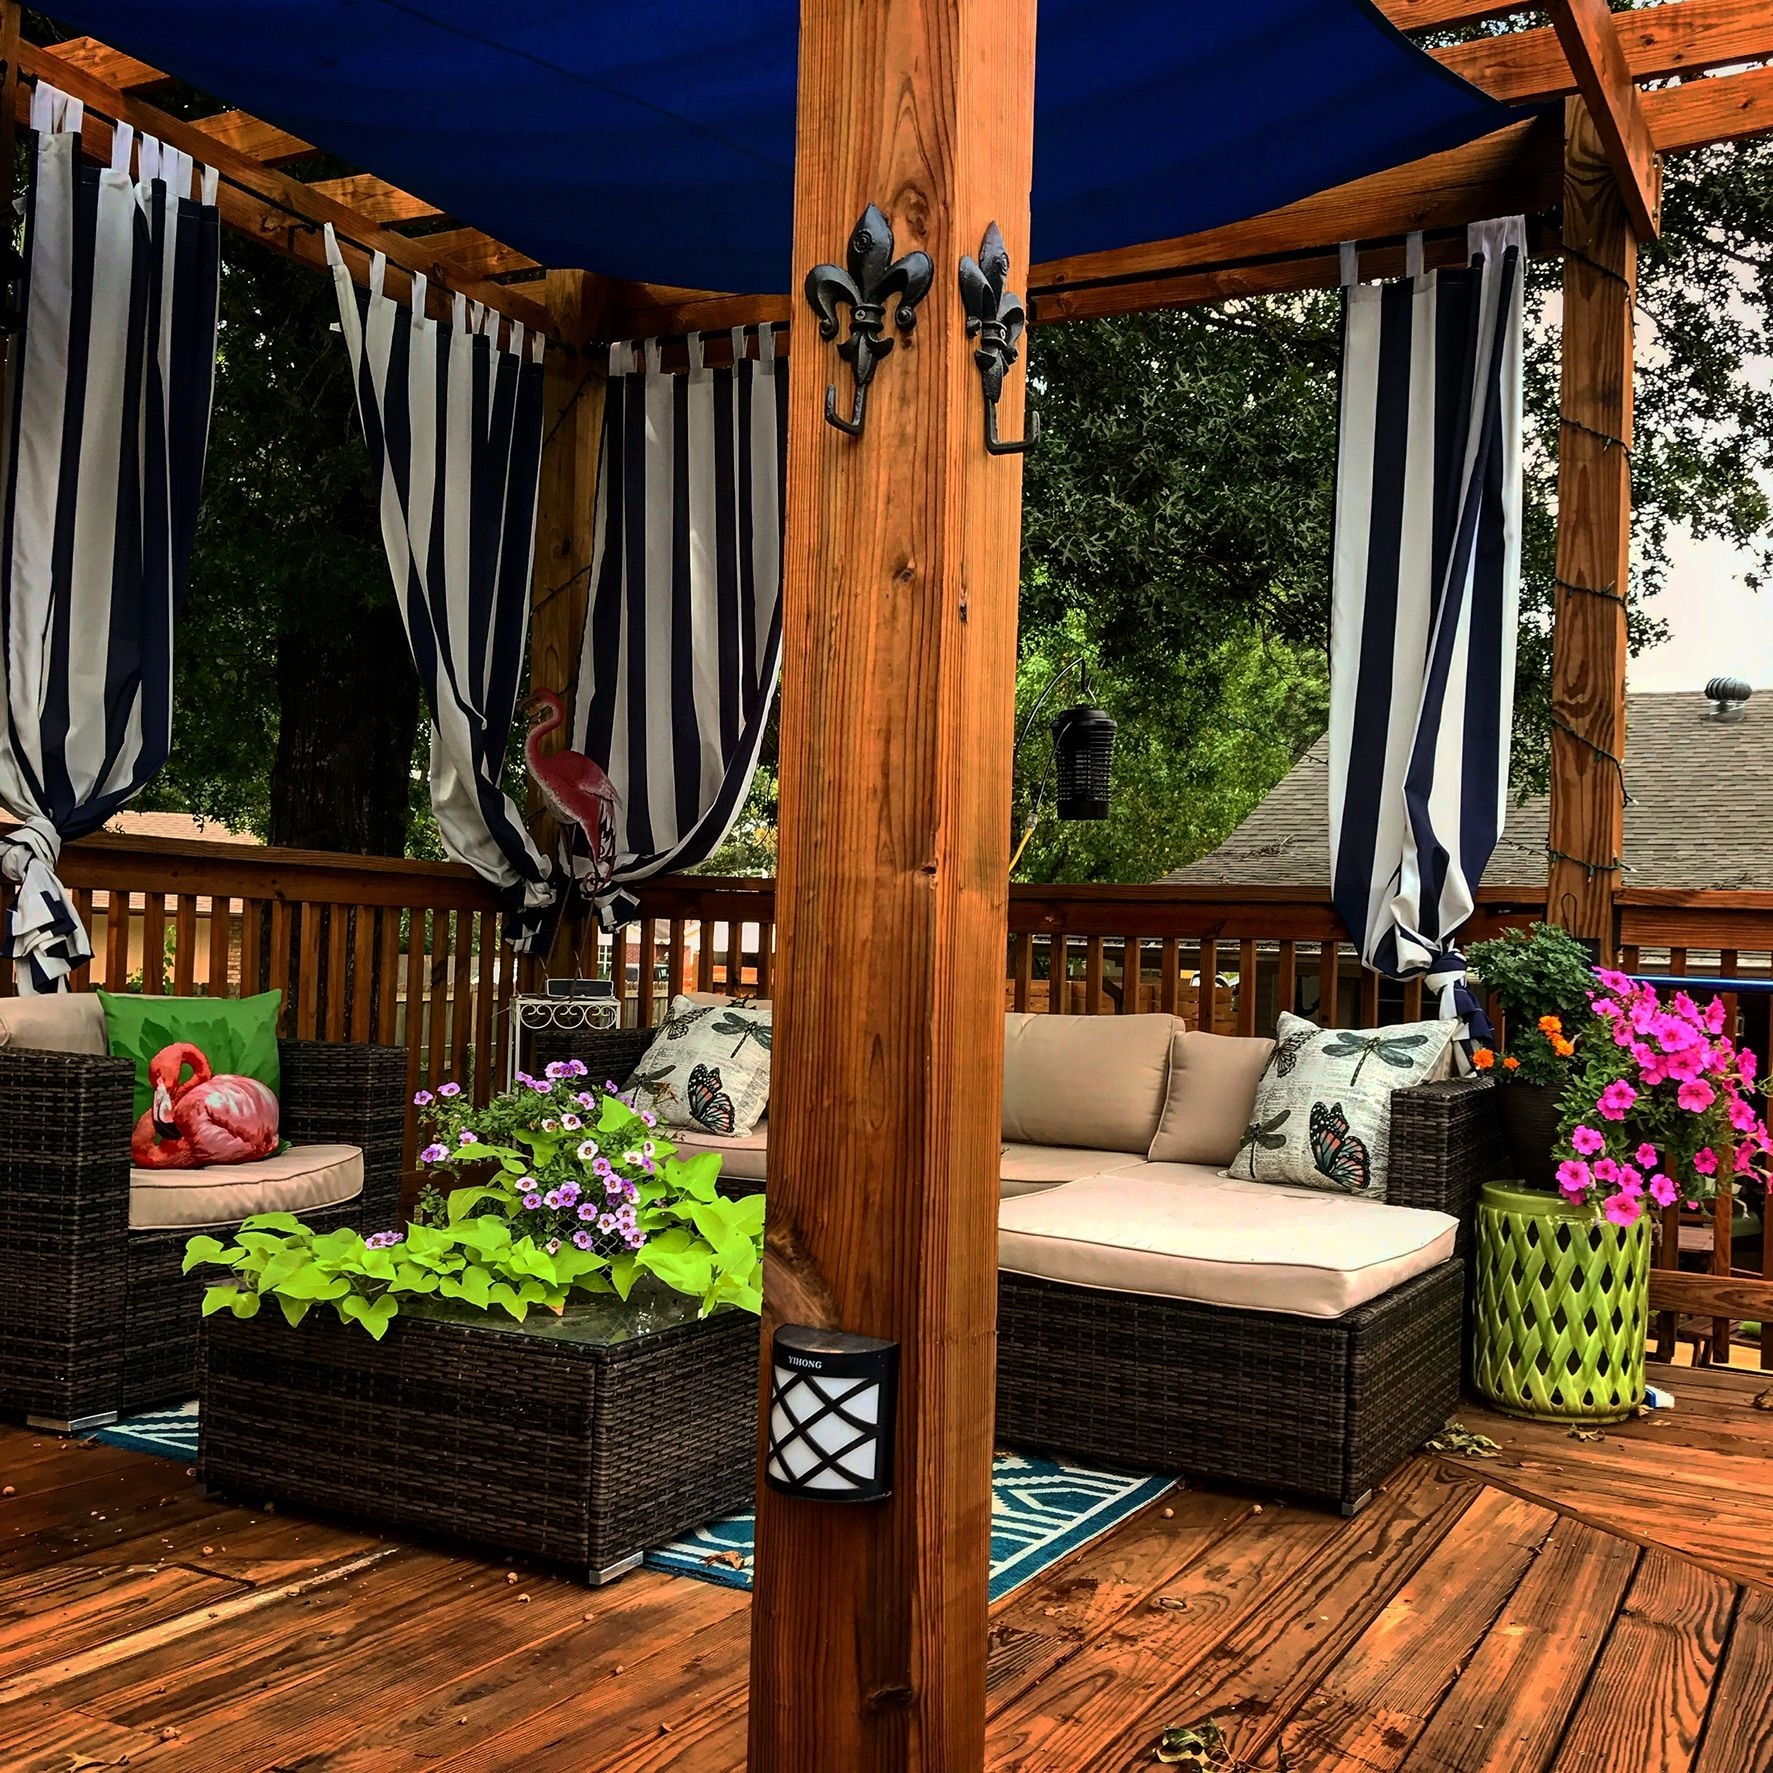 My own personal backyard oasis | Outdoor decor, Outdoor ... on My Garden Outdoor Living id=92957